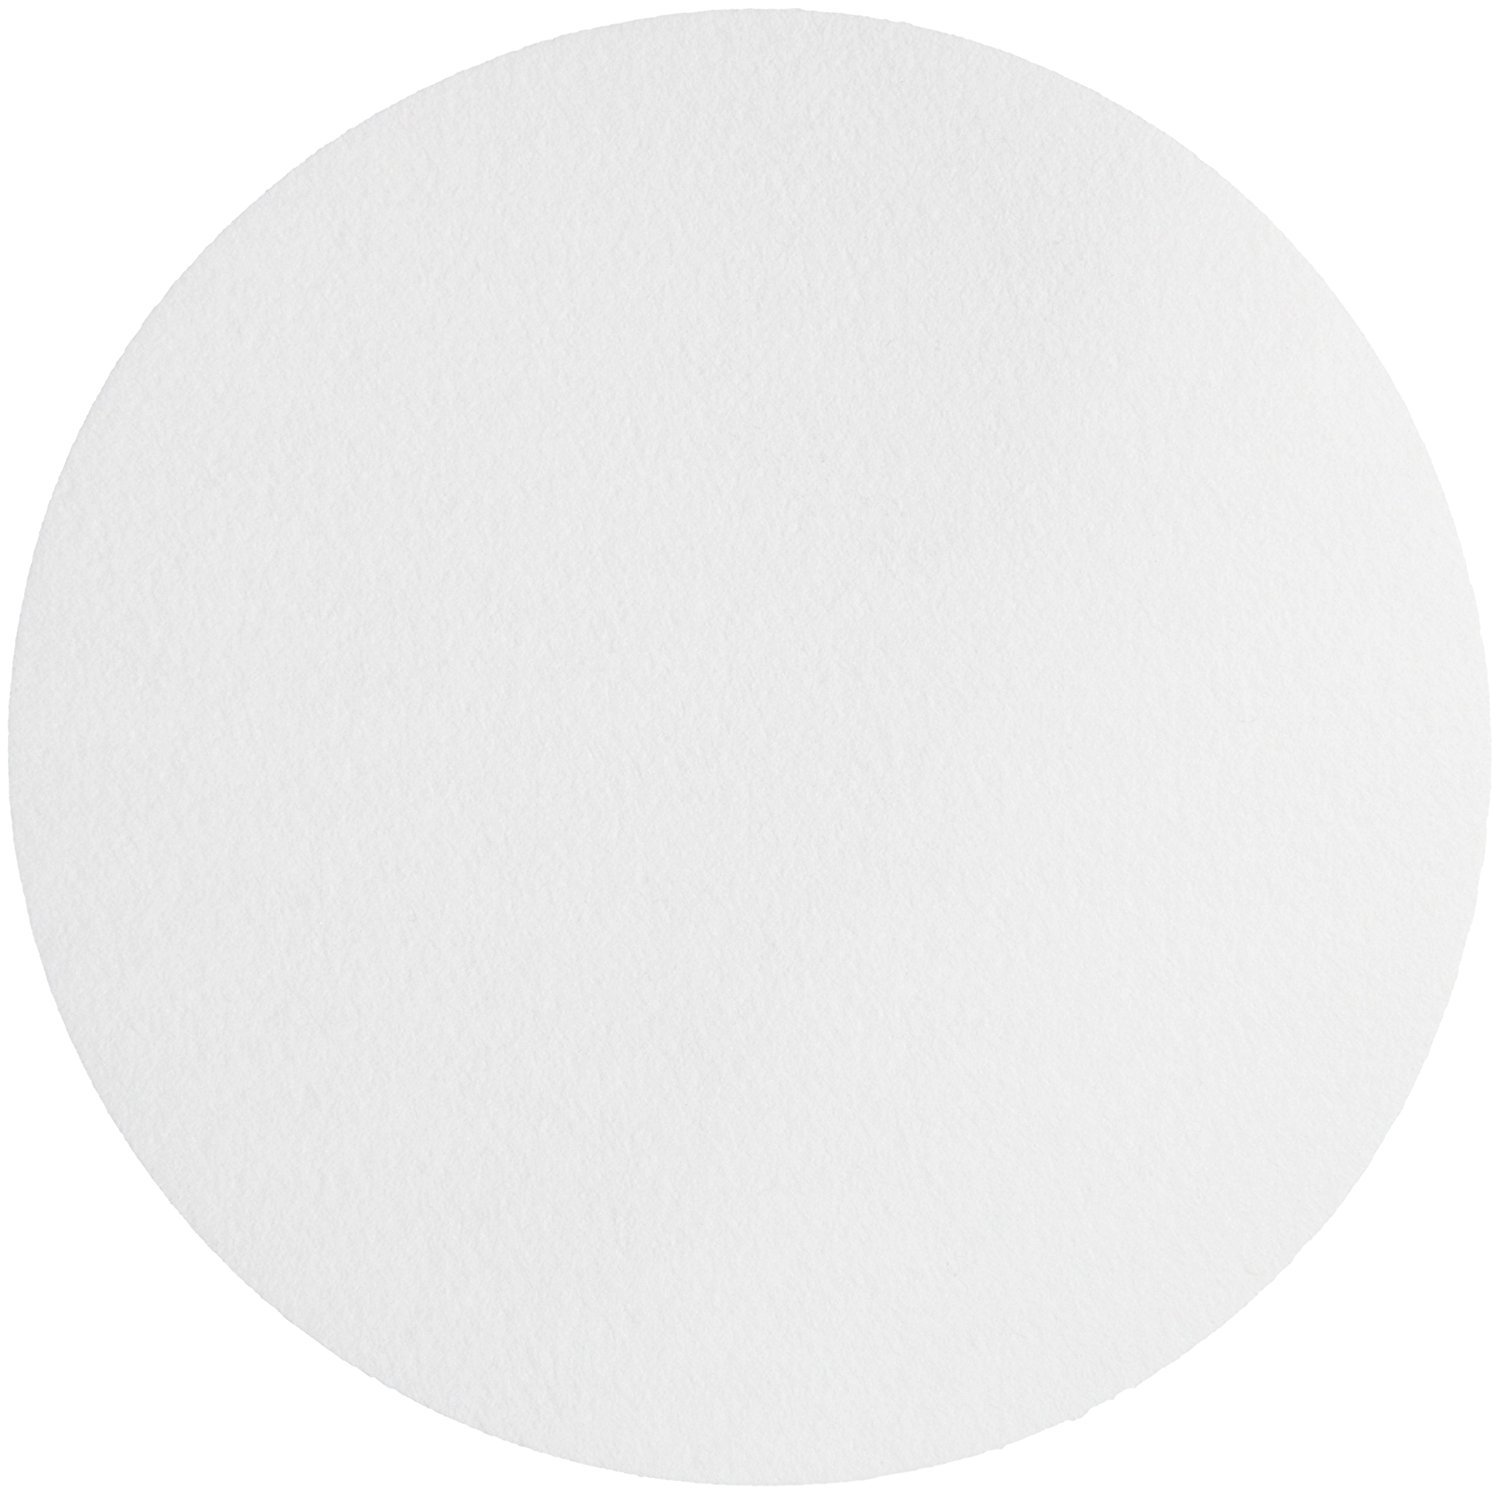 Whatman 4712B45PK 1001185 Quantitative Filter Paper Circles, 11 μm, 10.5 s/100 ml/sq in Flow Rate, Grade 1, 185 mm Diameter (Pack of 100) by Whatman